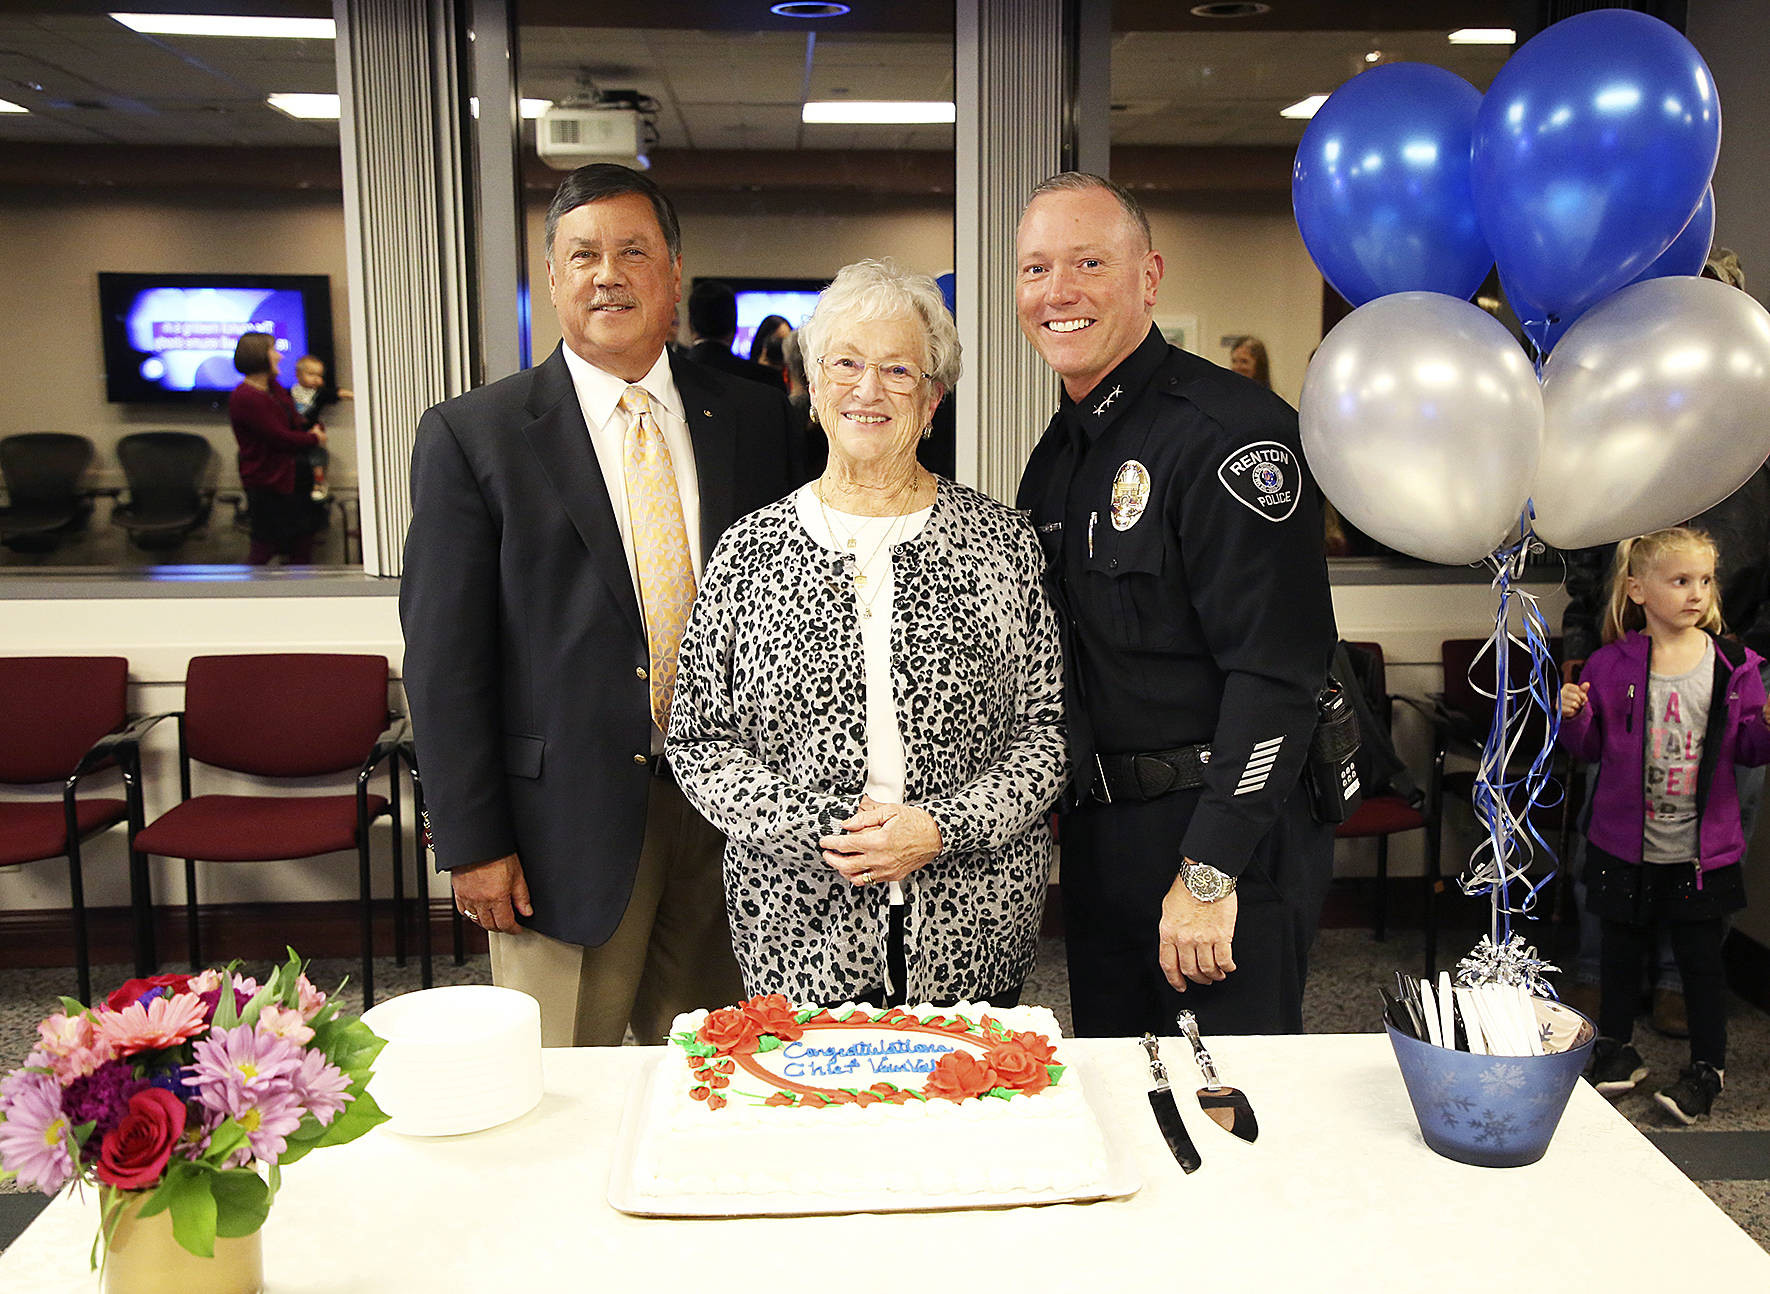 Mayor Denis Law Police Chief Ed VanValey and his mother Jo Ann VanValey pose at